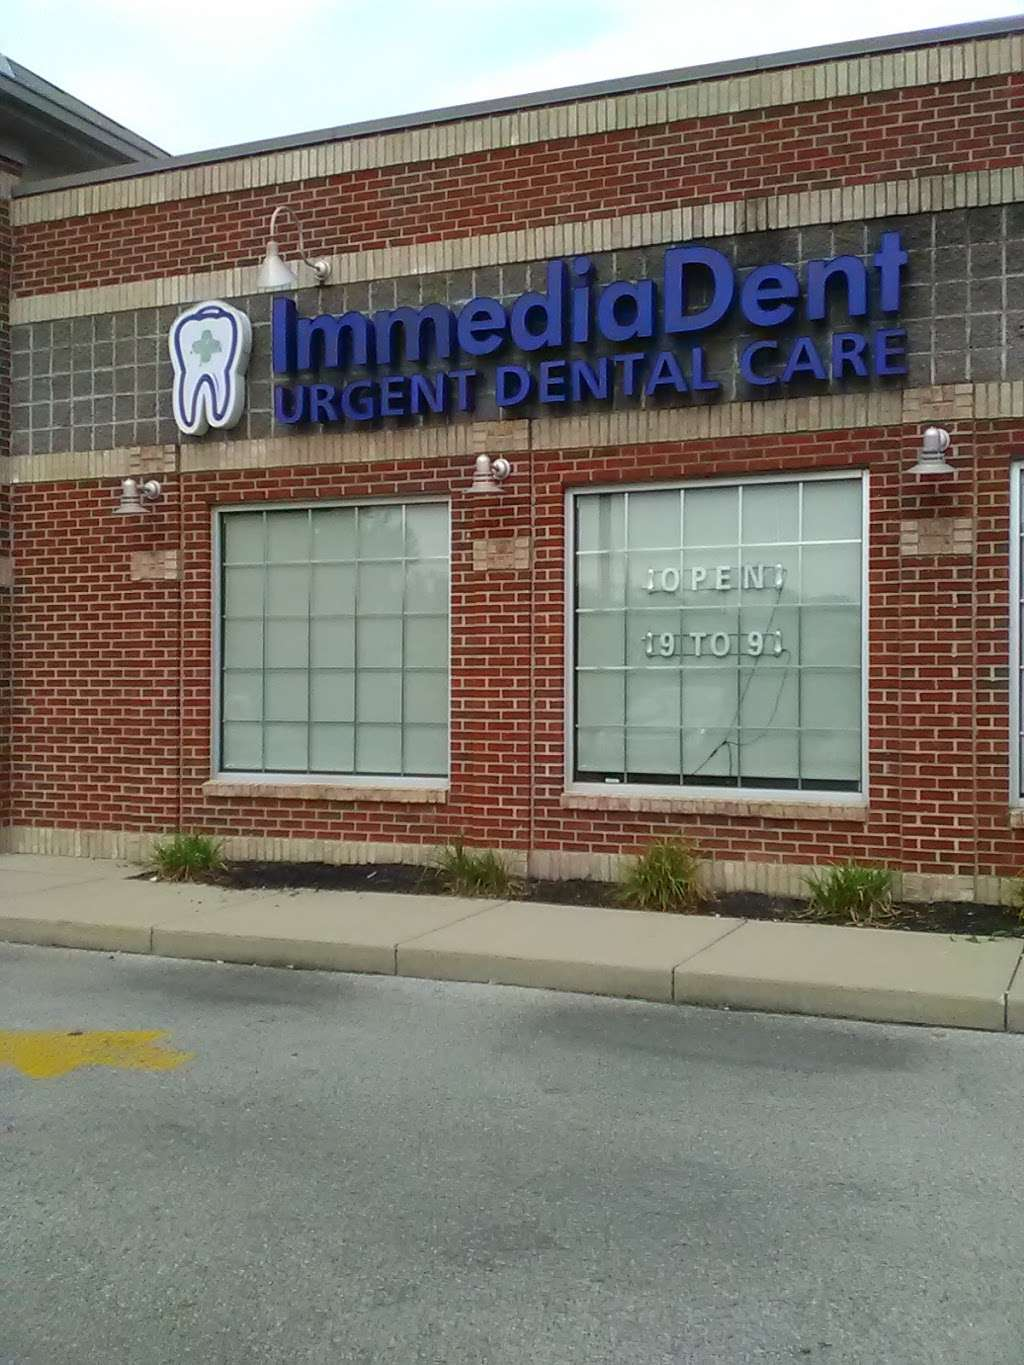 ImmediaDent - Urgent Dental Care - dentist    Photo 2 of 10   Address: 2128 Mounds Rd, Anderson, IN 46016, USA   Phone: (765) 642-0400